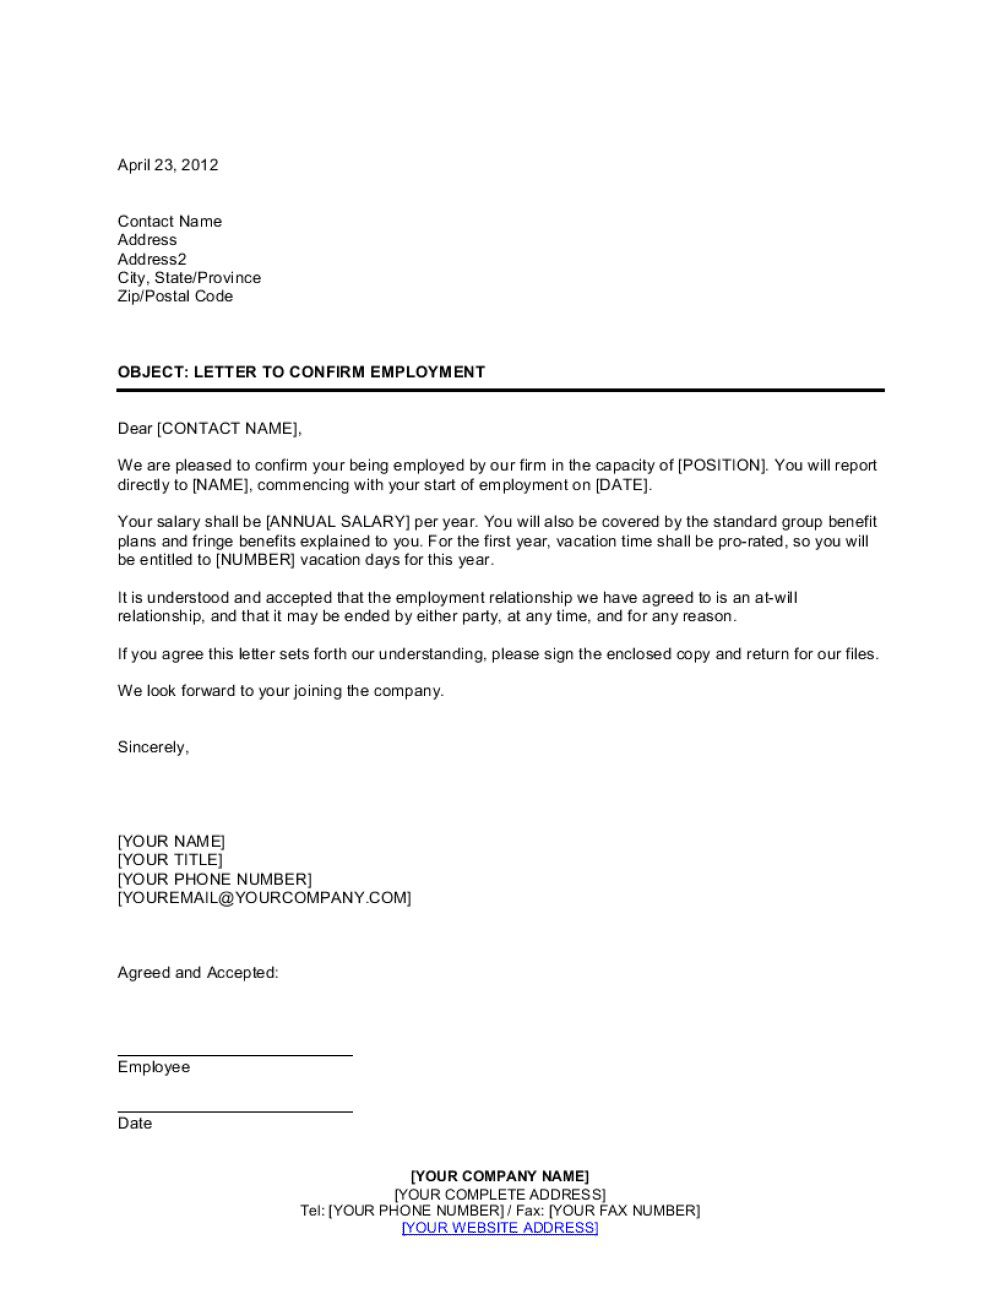 004 Impressive Letter Of Employment Template High Resolution  Confirmation Canada For MortgageFull